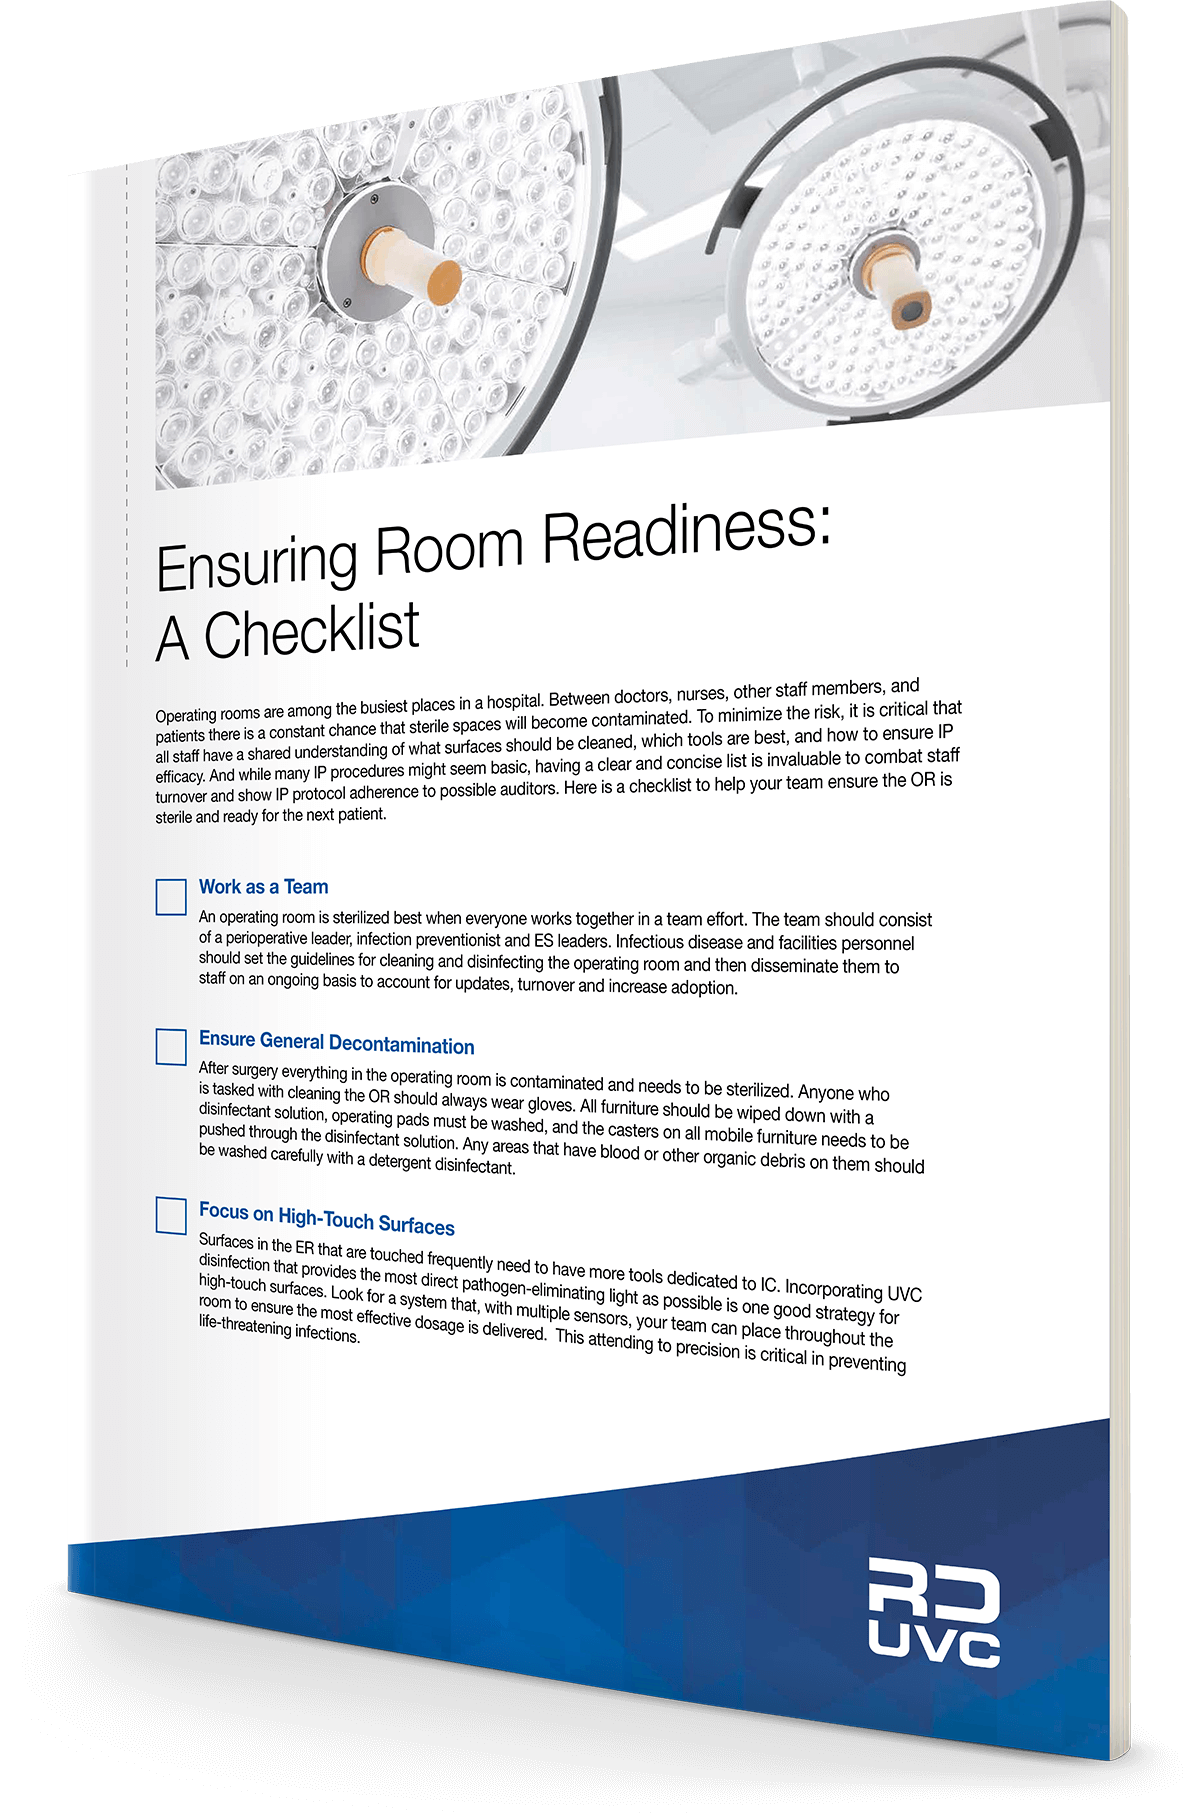 Ensuring Room Readiness